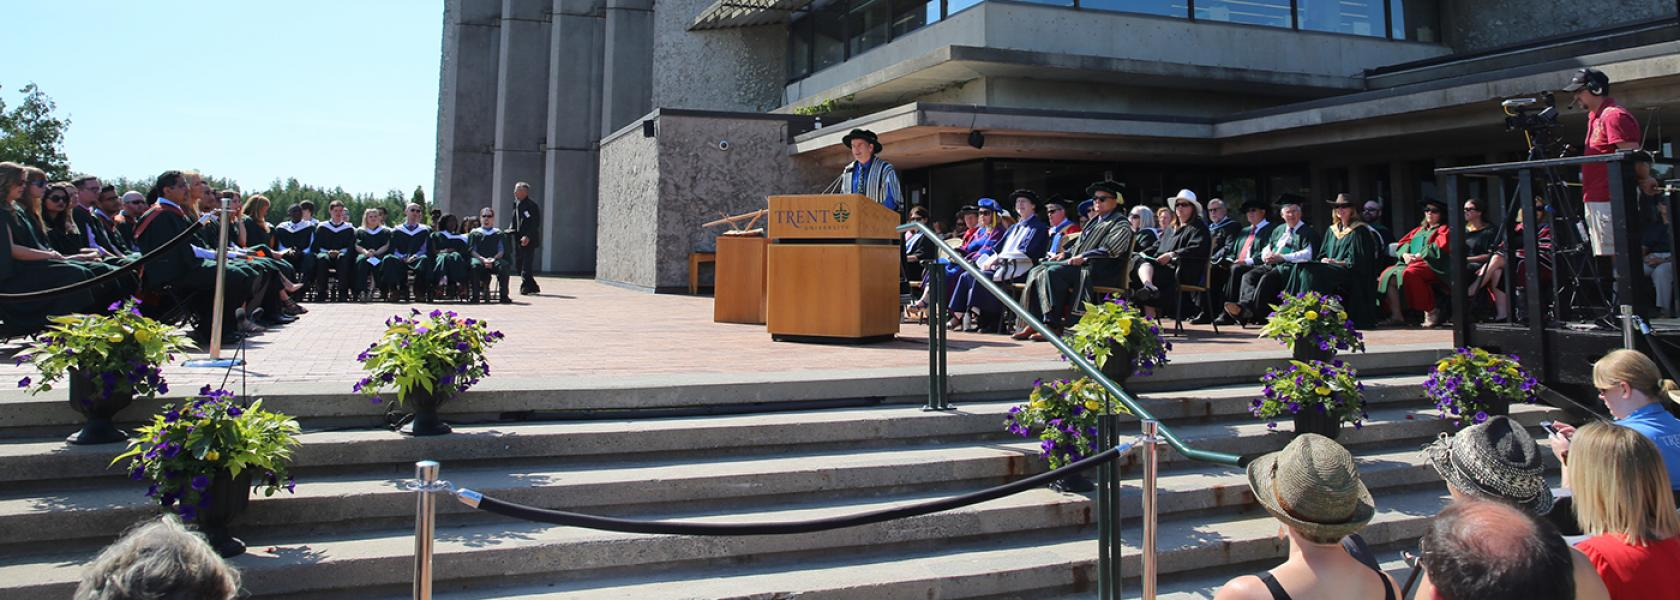 Dr. Leo Groarke standing talking into a podium microphone during convocation outisde of the Bata library